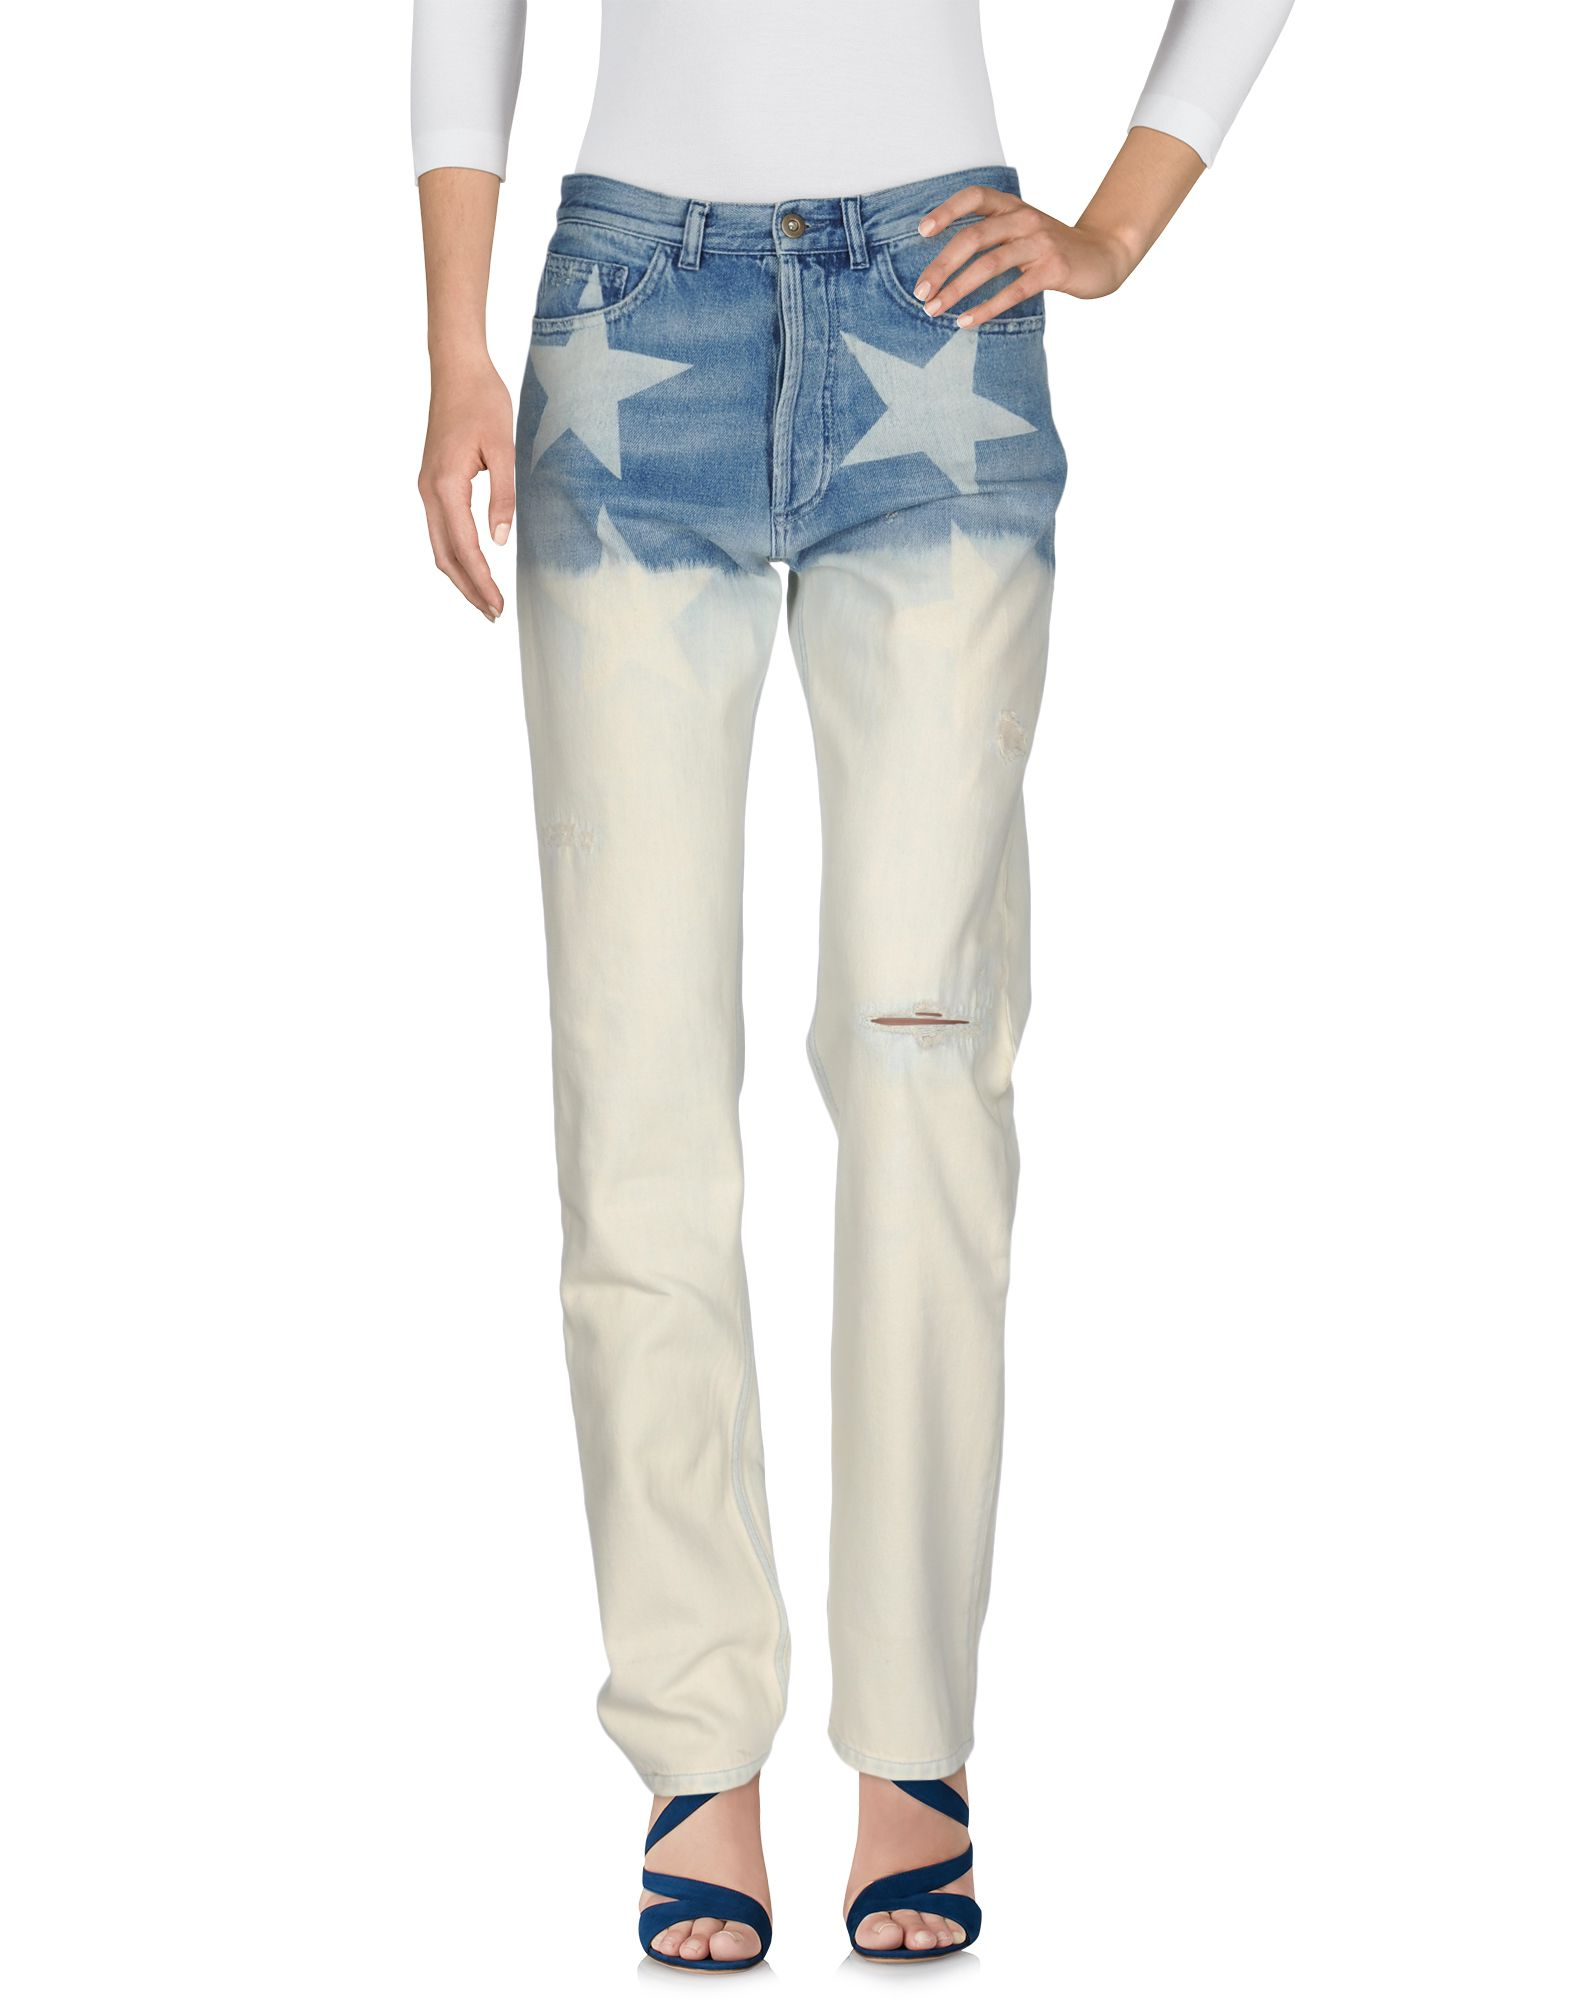 Pantaloni Jeans Faith Connexion Donna - Acquista online su FUyJIq56